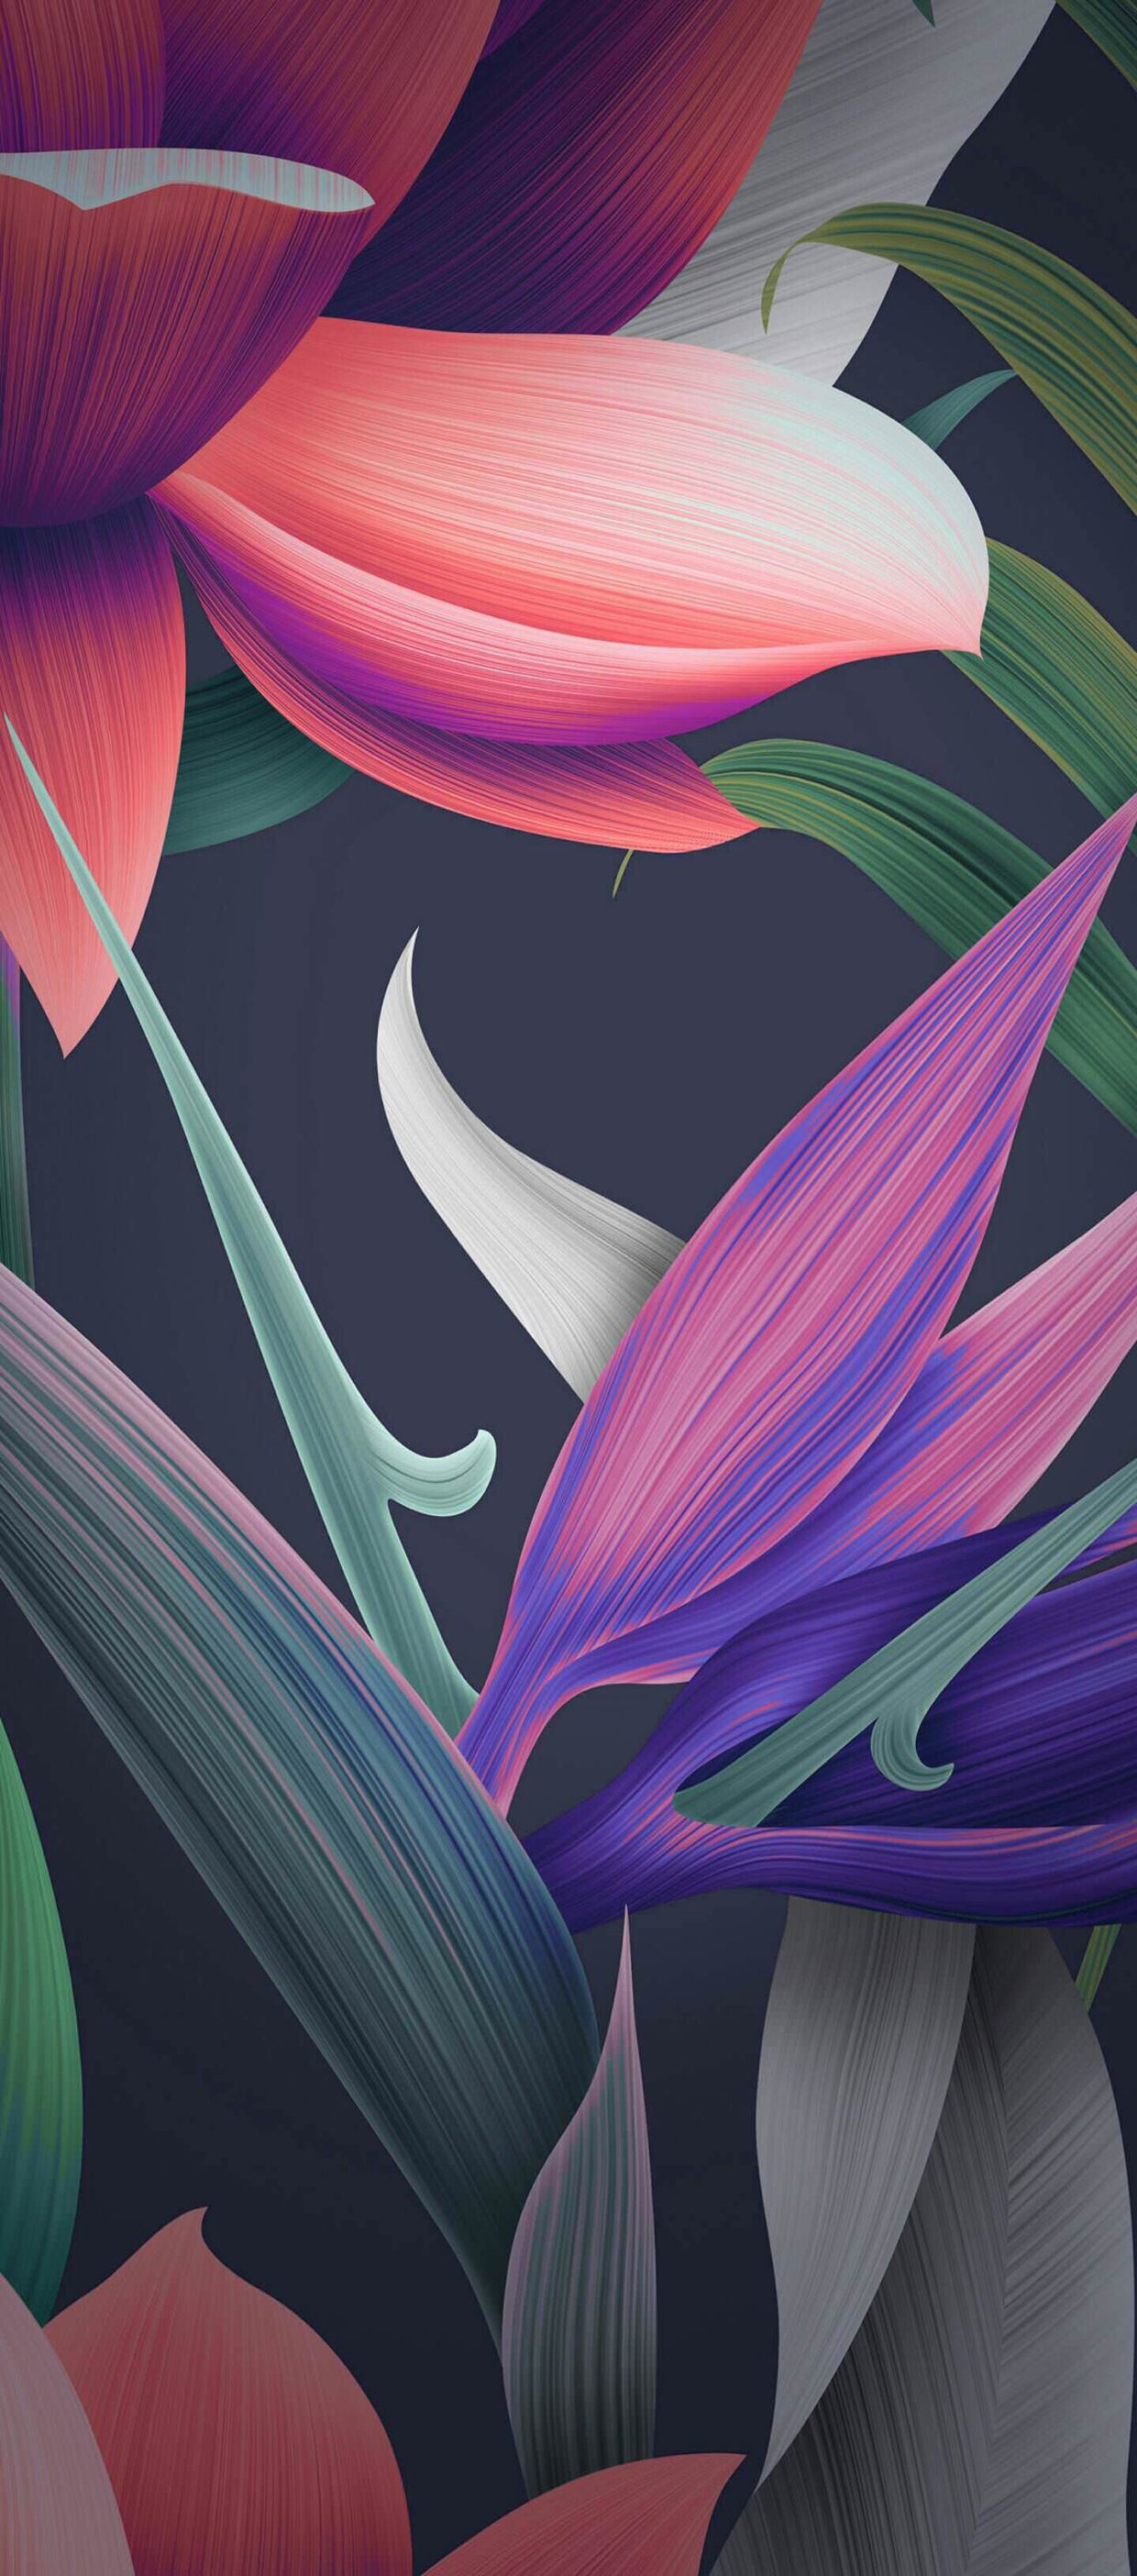 Floral Black Purple Orange Pink Wallpaper Clean Galaxy Colour Abstract Digital Art S8 W Samsung Galaxy Wallpaper Samsung Wallpaper Galaxy Wallpaper